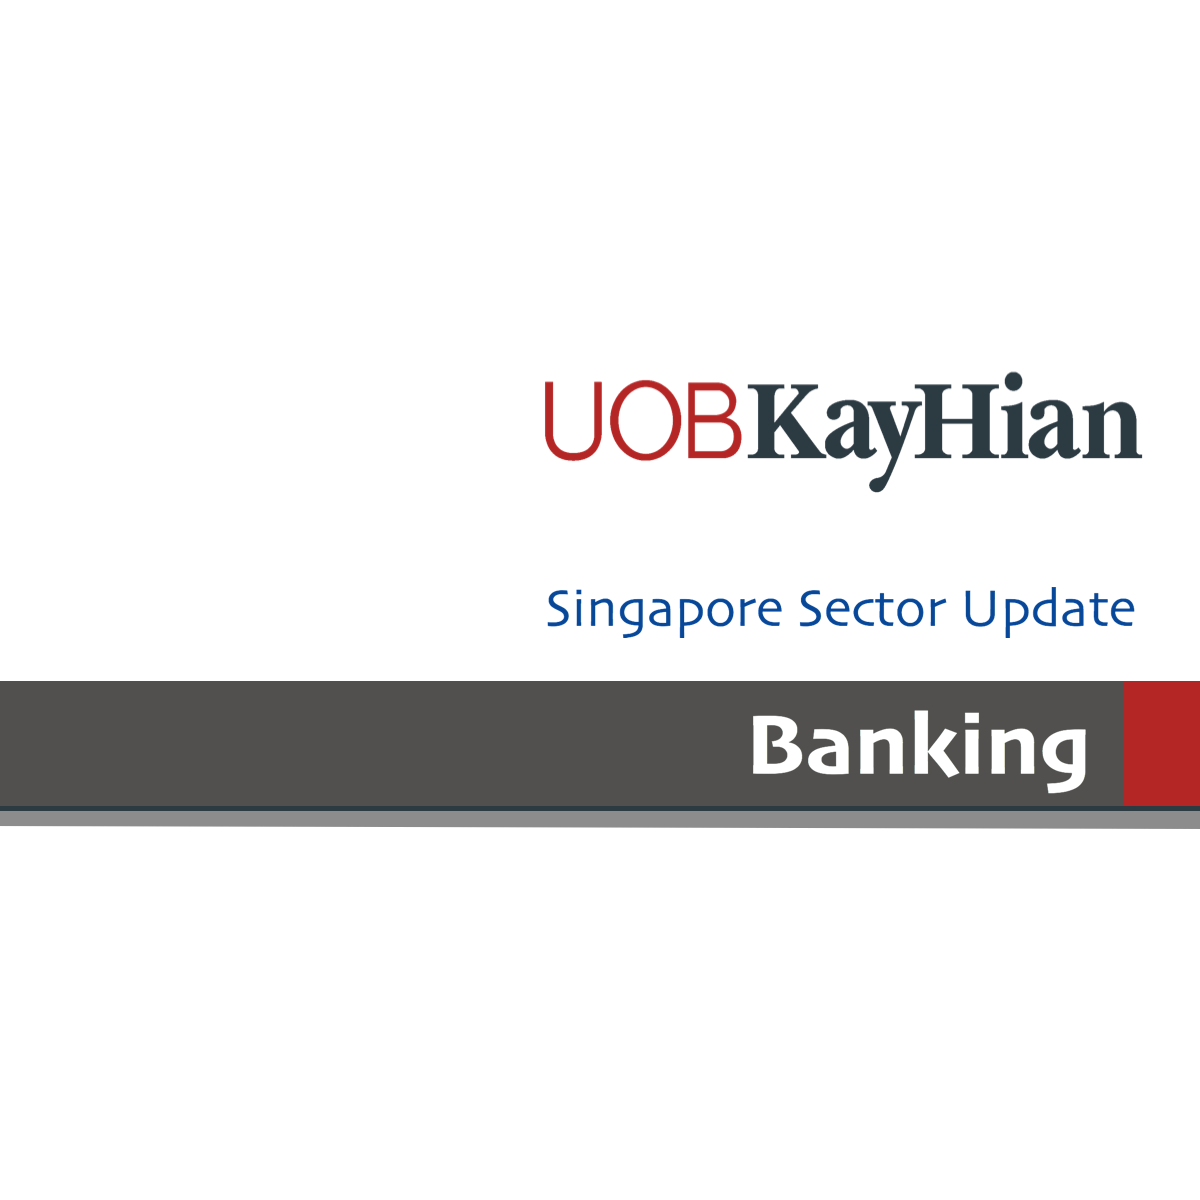 Banking – Singapore - UOB Kay Hian 2017-12-01: Oct 17 Monthly Statistics: Acceleration In Loans To Businesses